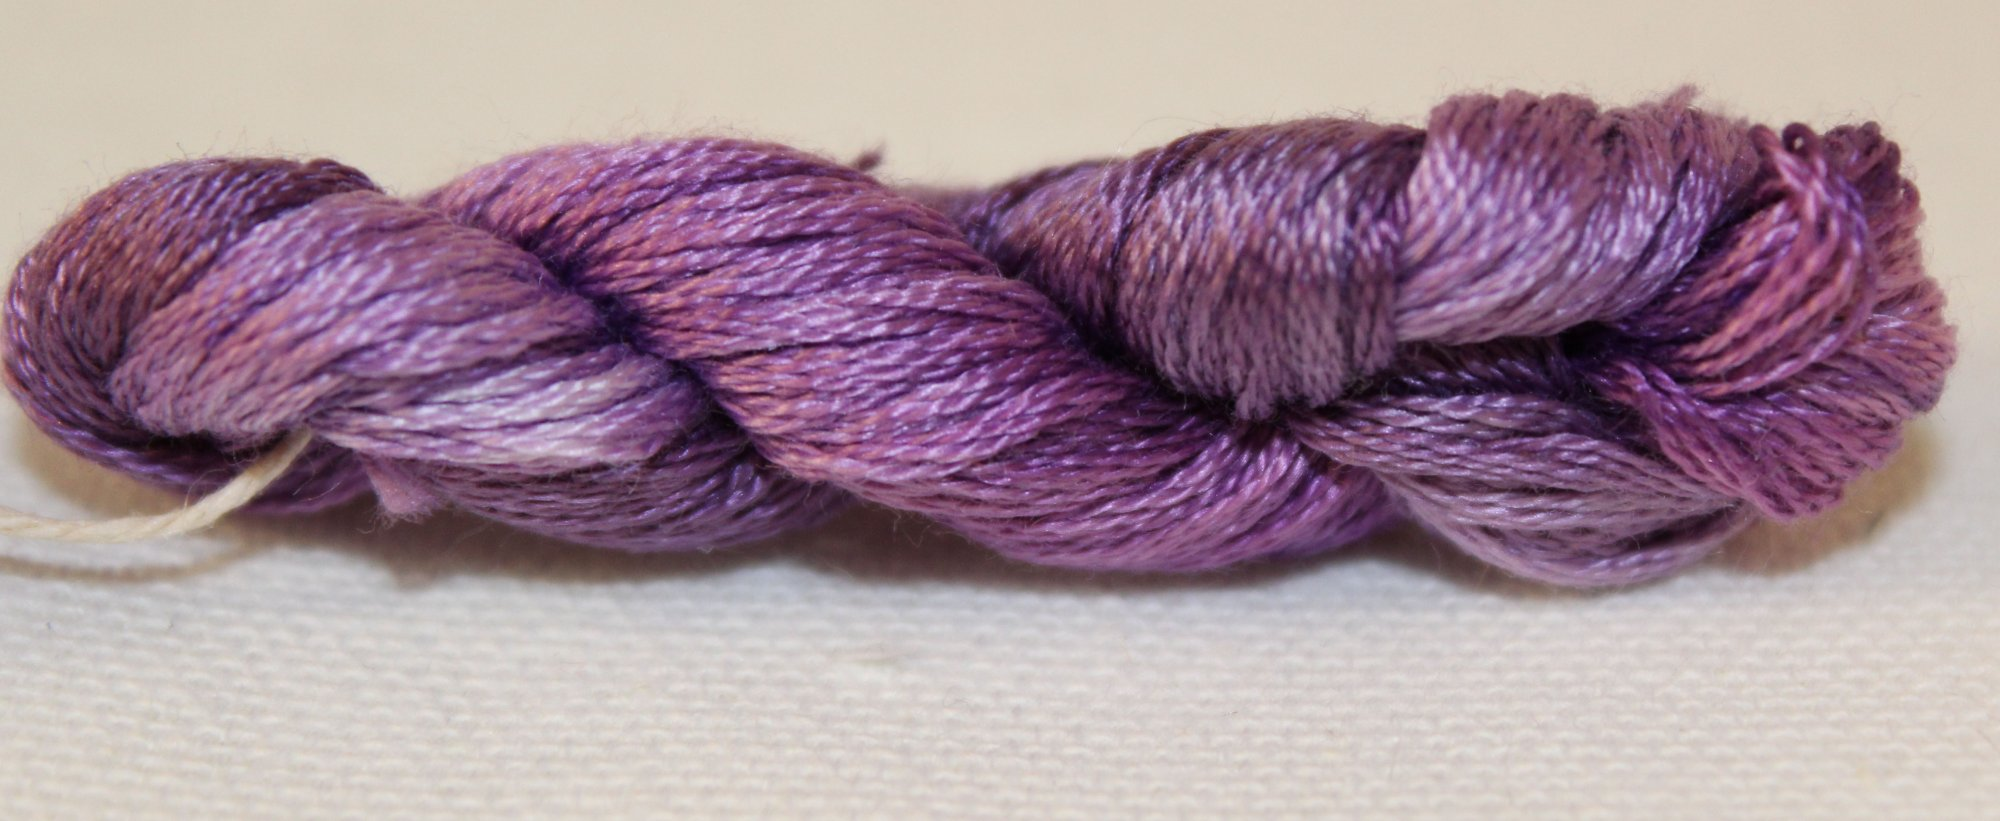 Berry Patch- Hand-Dyed Embroidery Floss